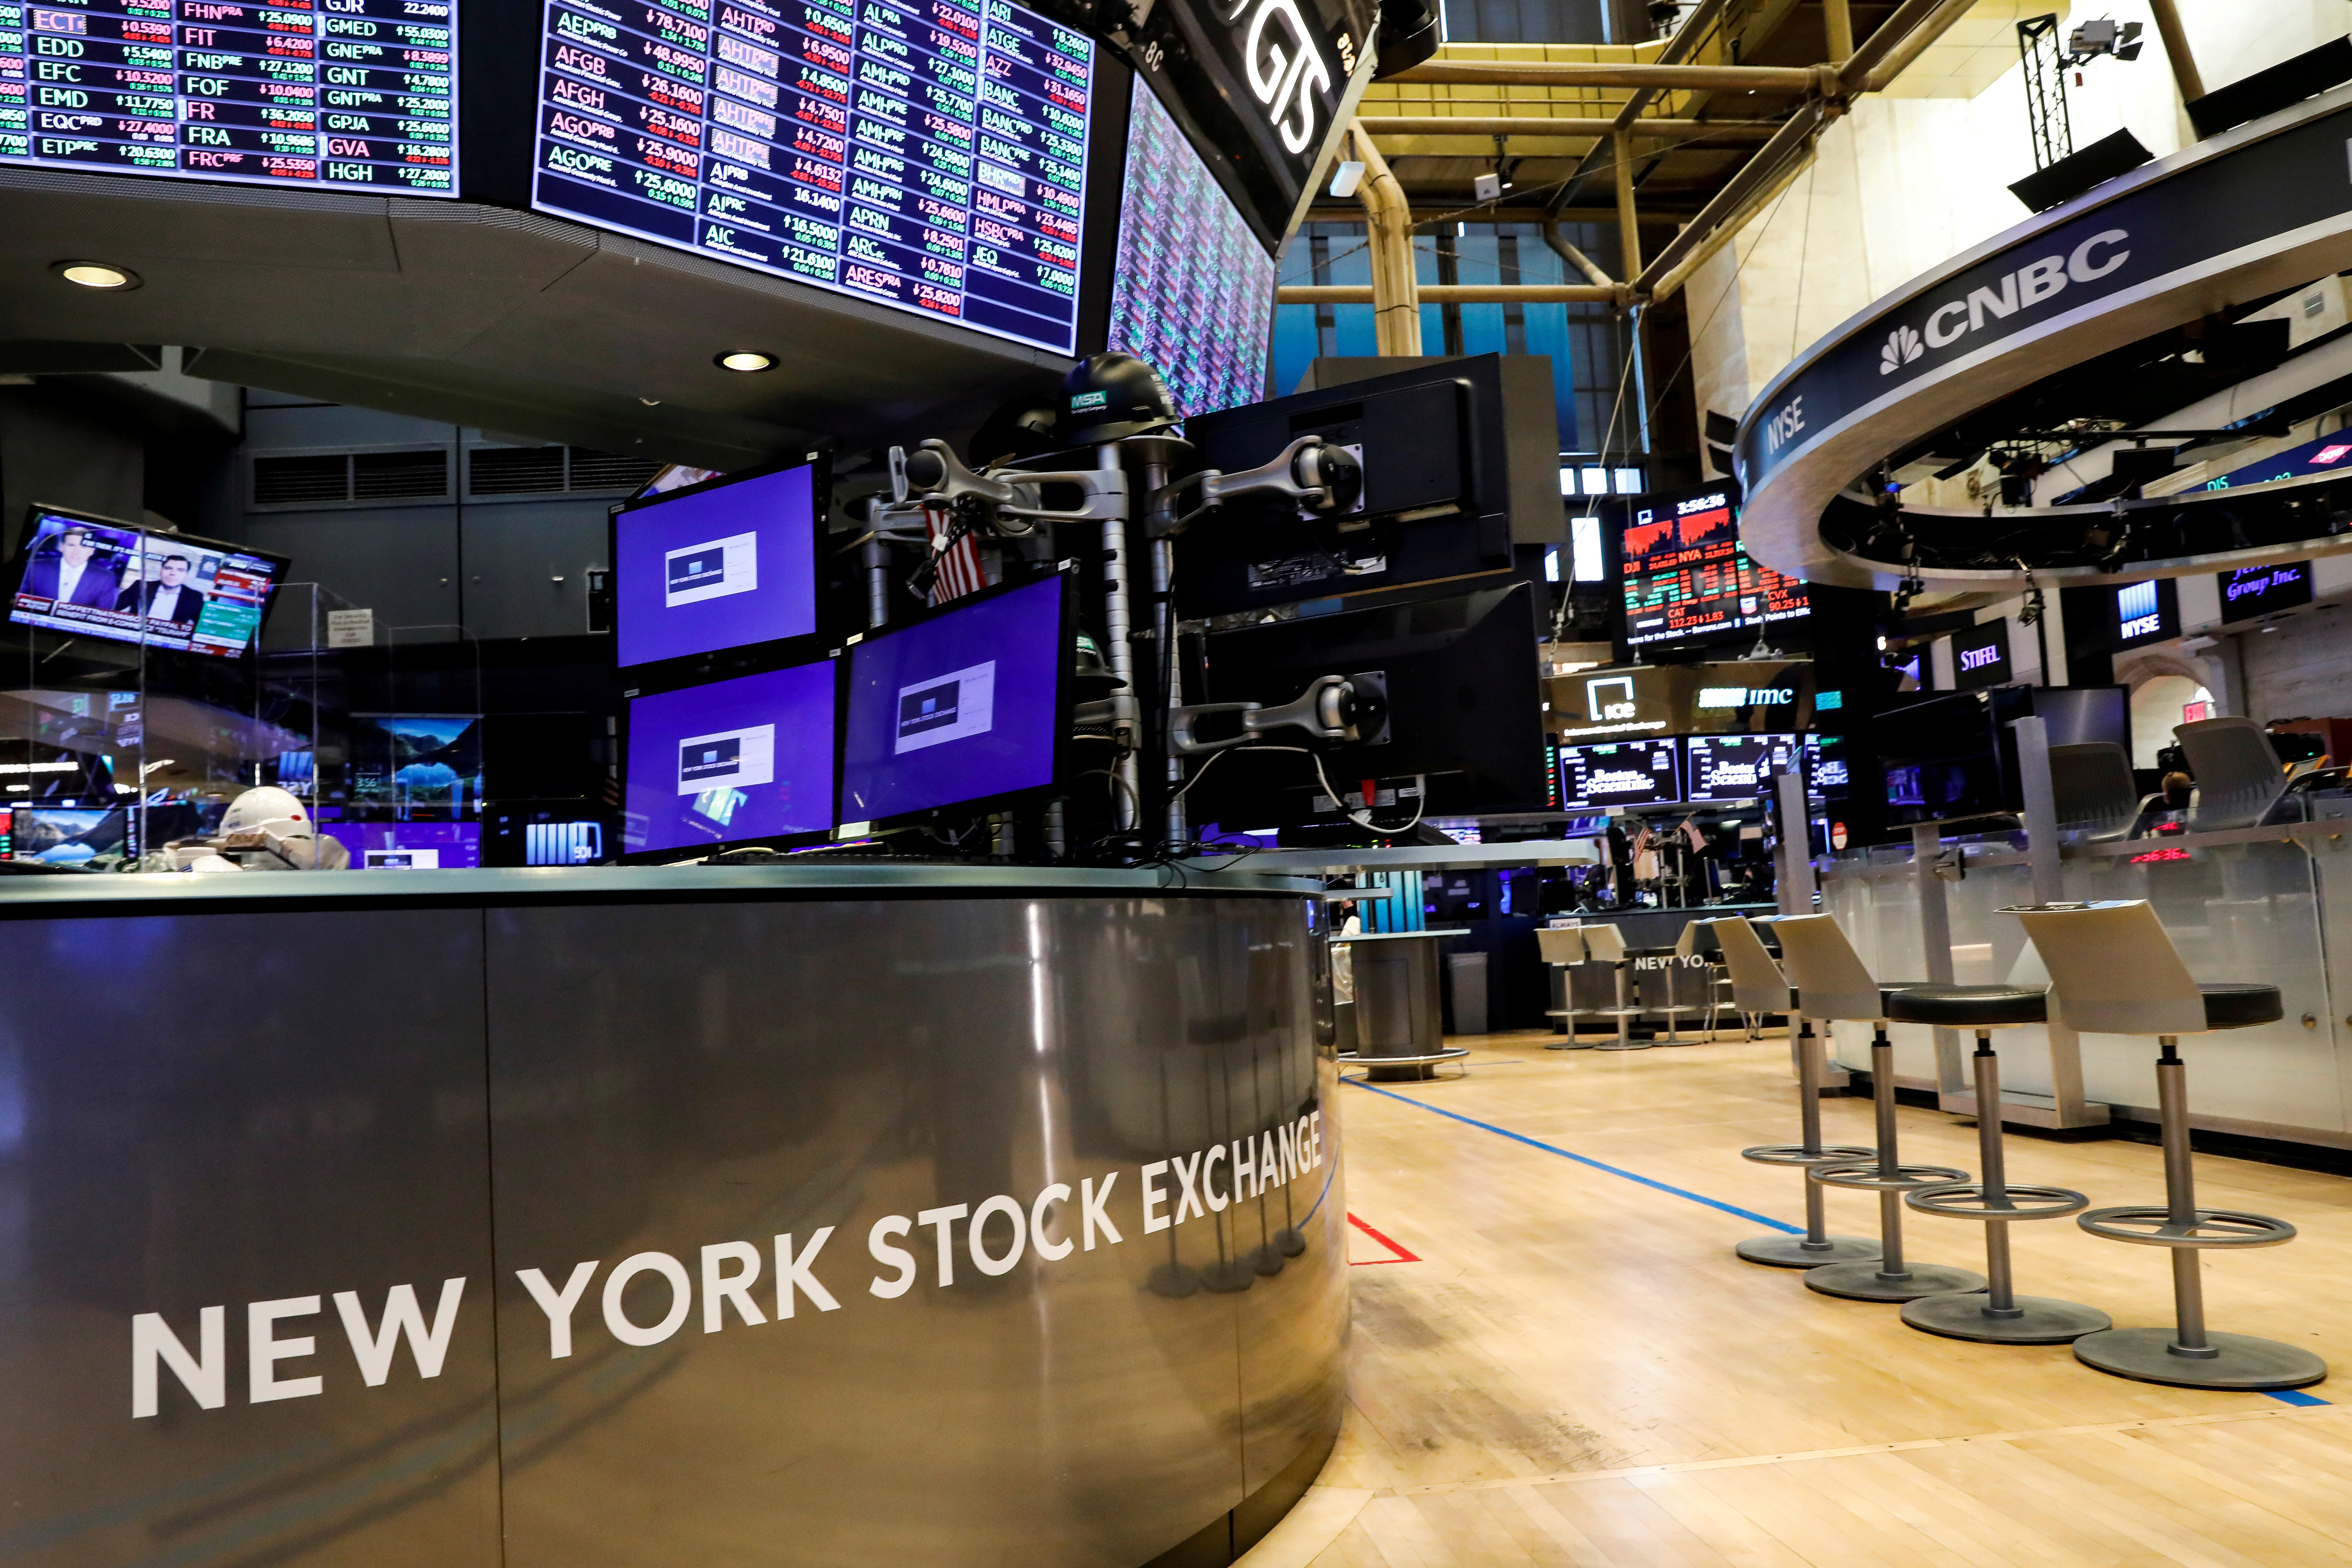 A nearly empty trading floor is seen at the New York Stock Exchange (NYSE) in New York, U.S., May 22, 2020. REUTERS/Brendan McDermid/File Photo